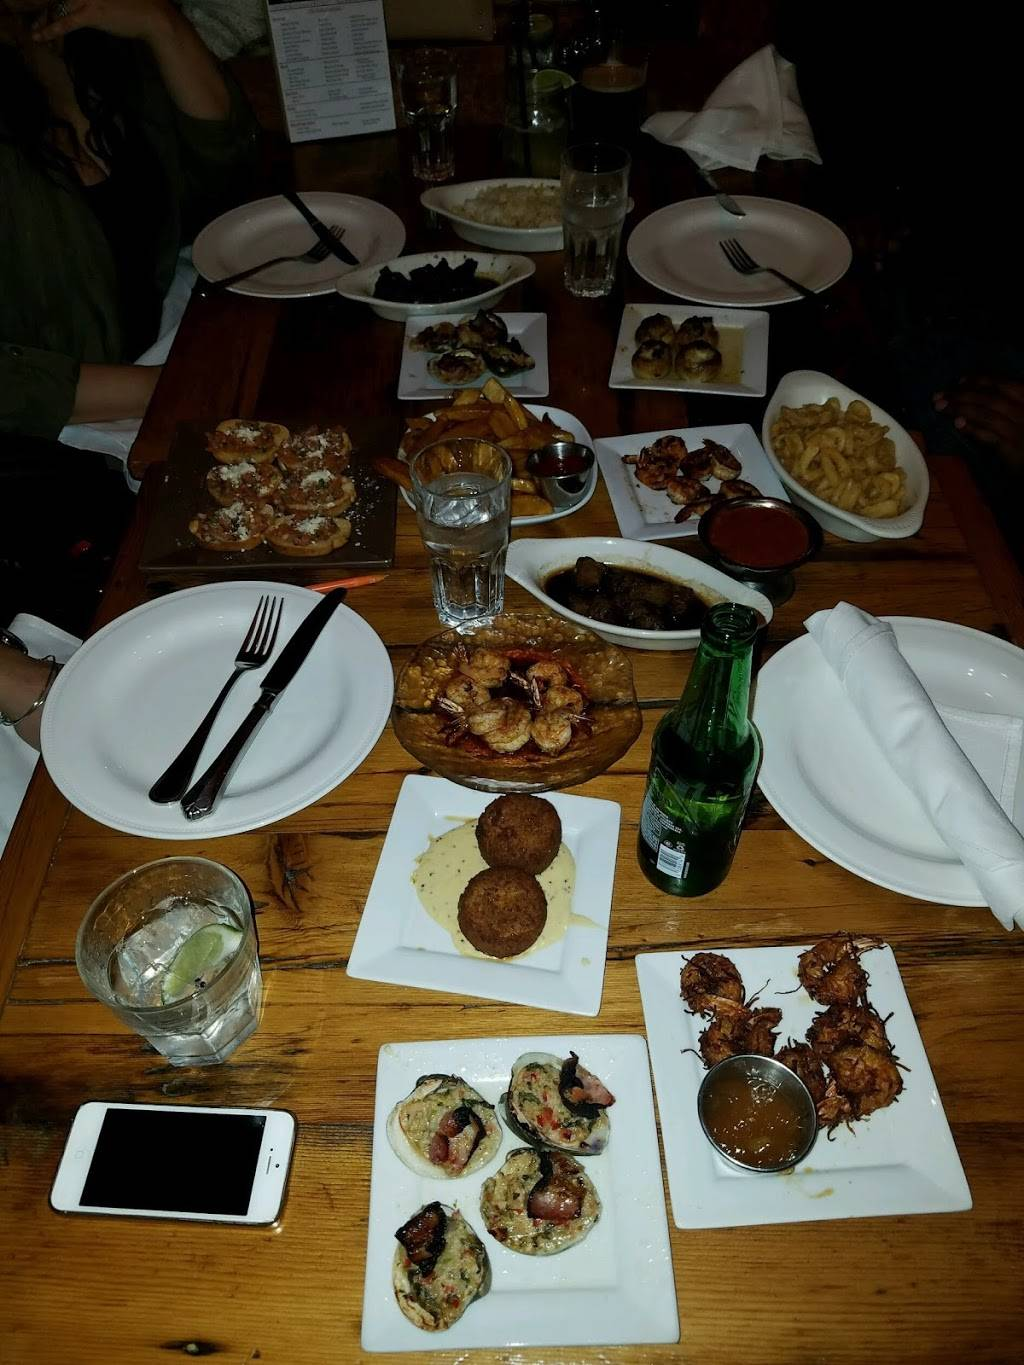 Taos Restaurant & Lounge | restaurant | 356 Paterson Ave, East Rutherford, NJ 07073, USA | 2014608988 OR +1 201-460-8988